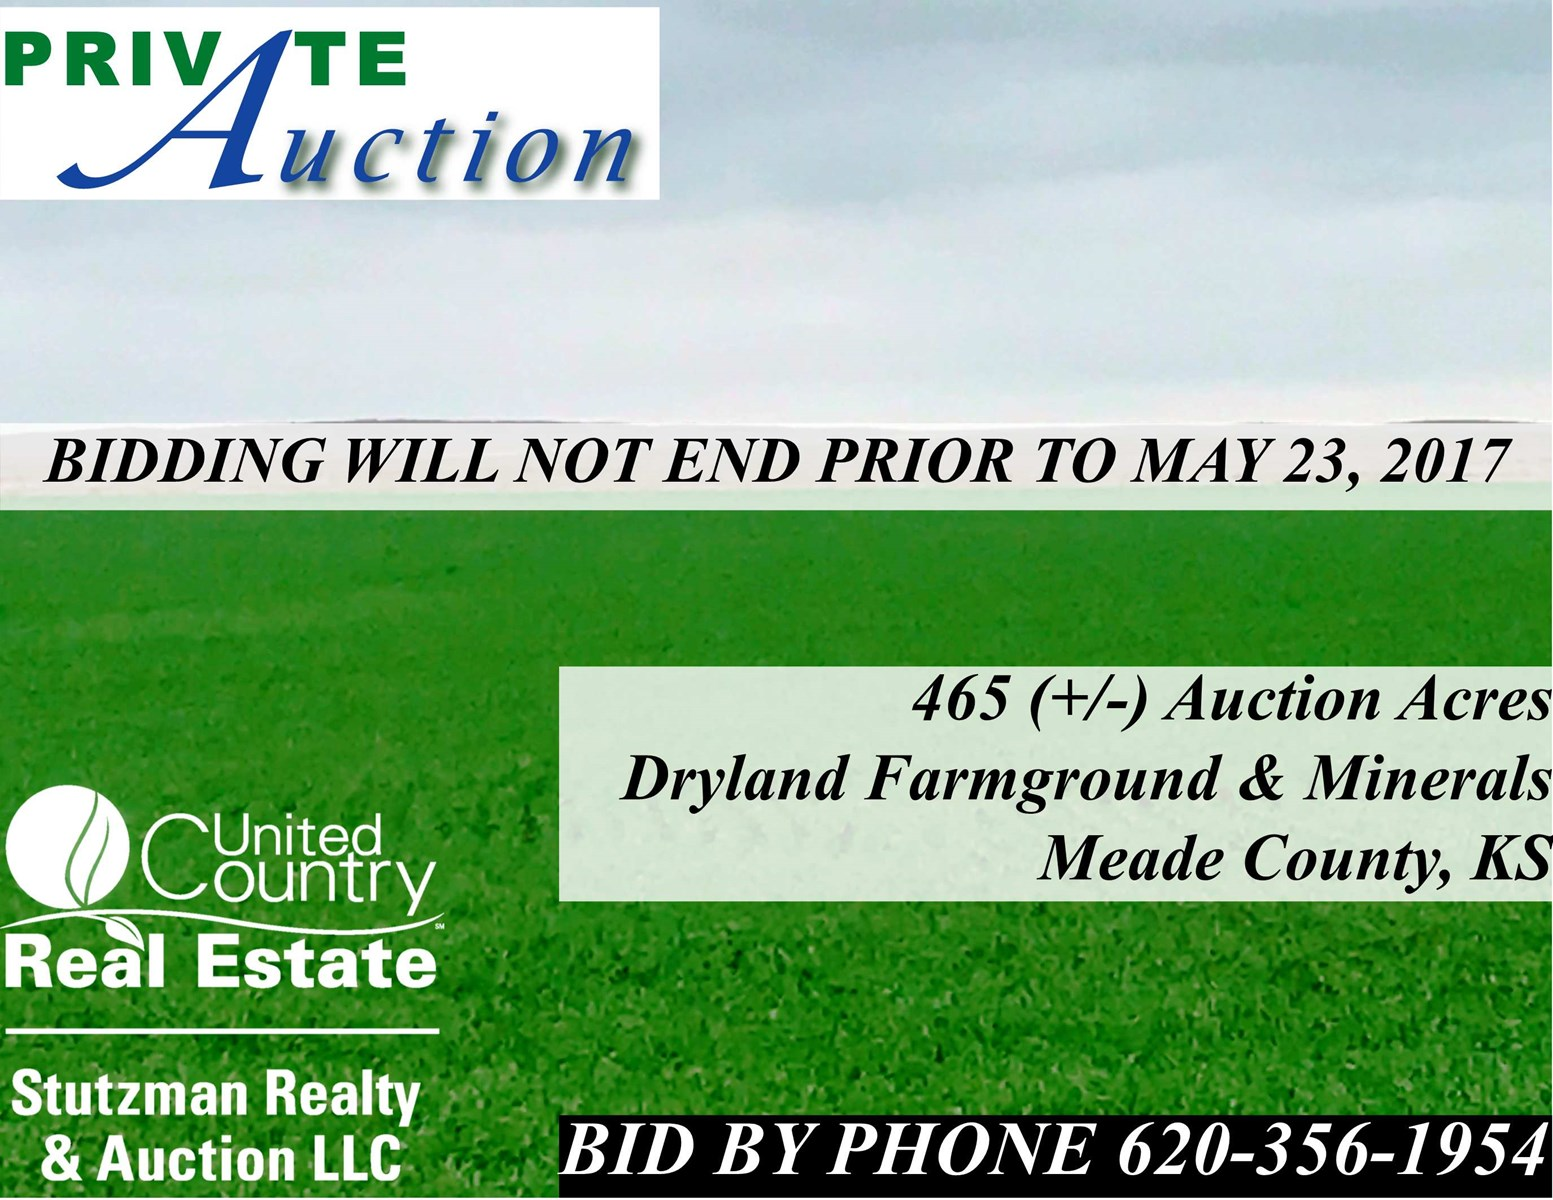 465+/- ACRES OF FARMLAND & MINERALS, MEADE CO., KS